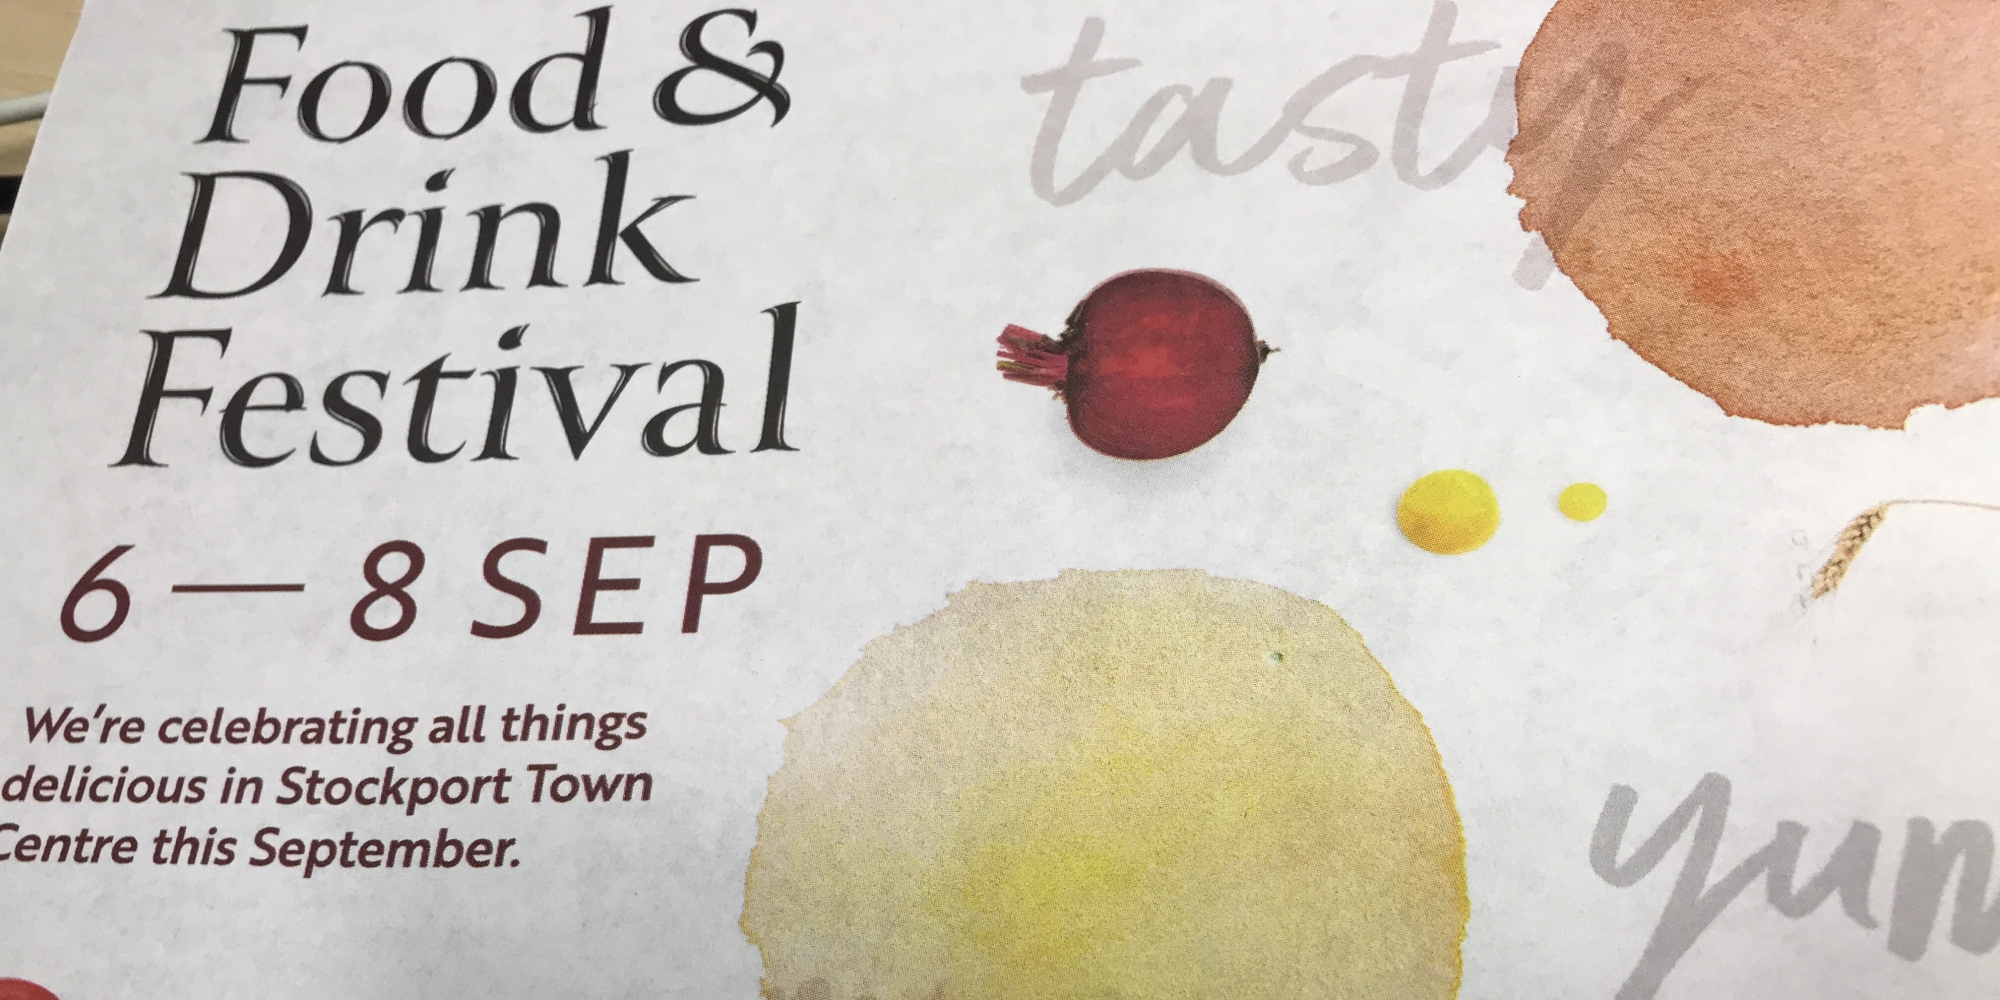 Stockport Food and Drink Festival 2019